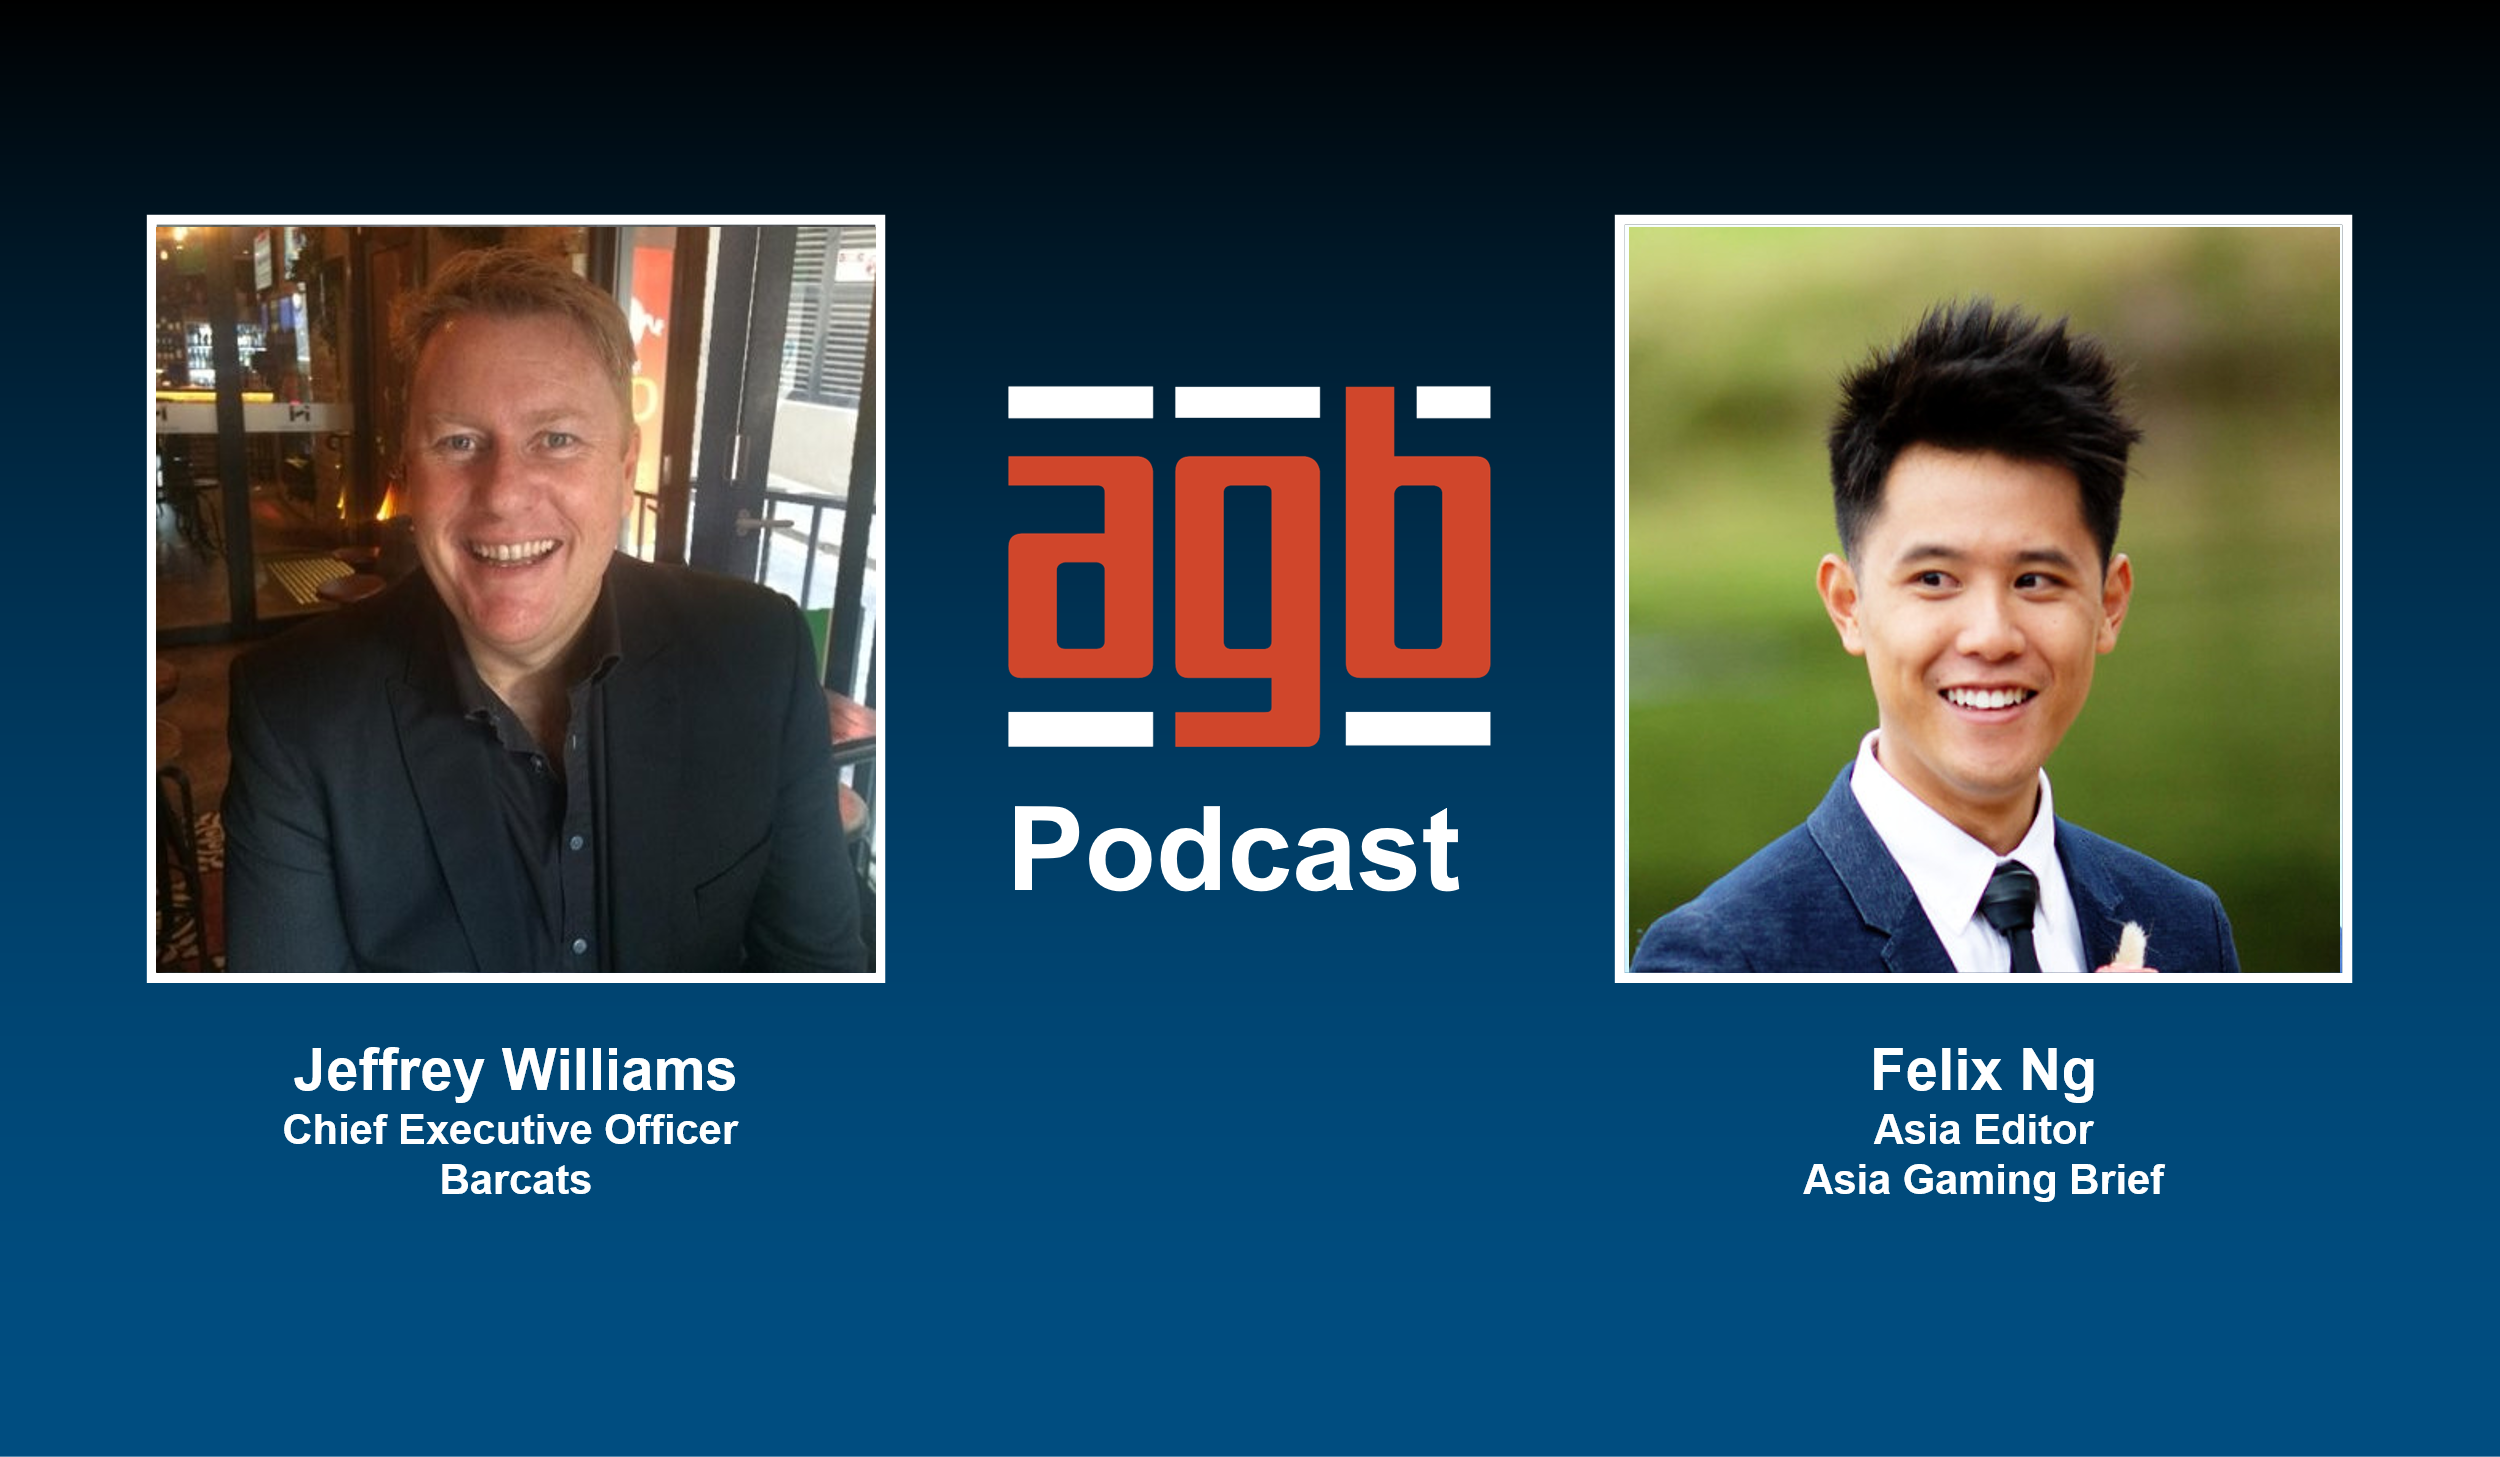 Agb Podcast, Jeffrey Williams